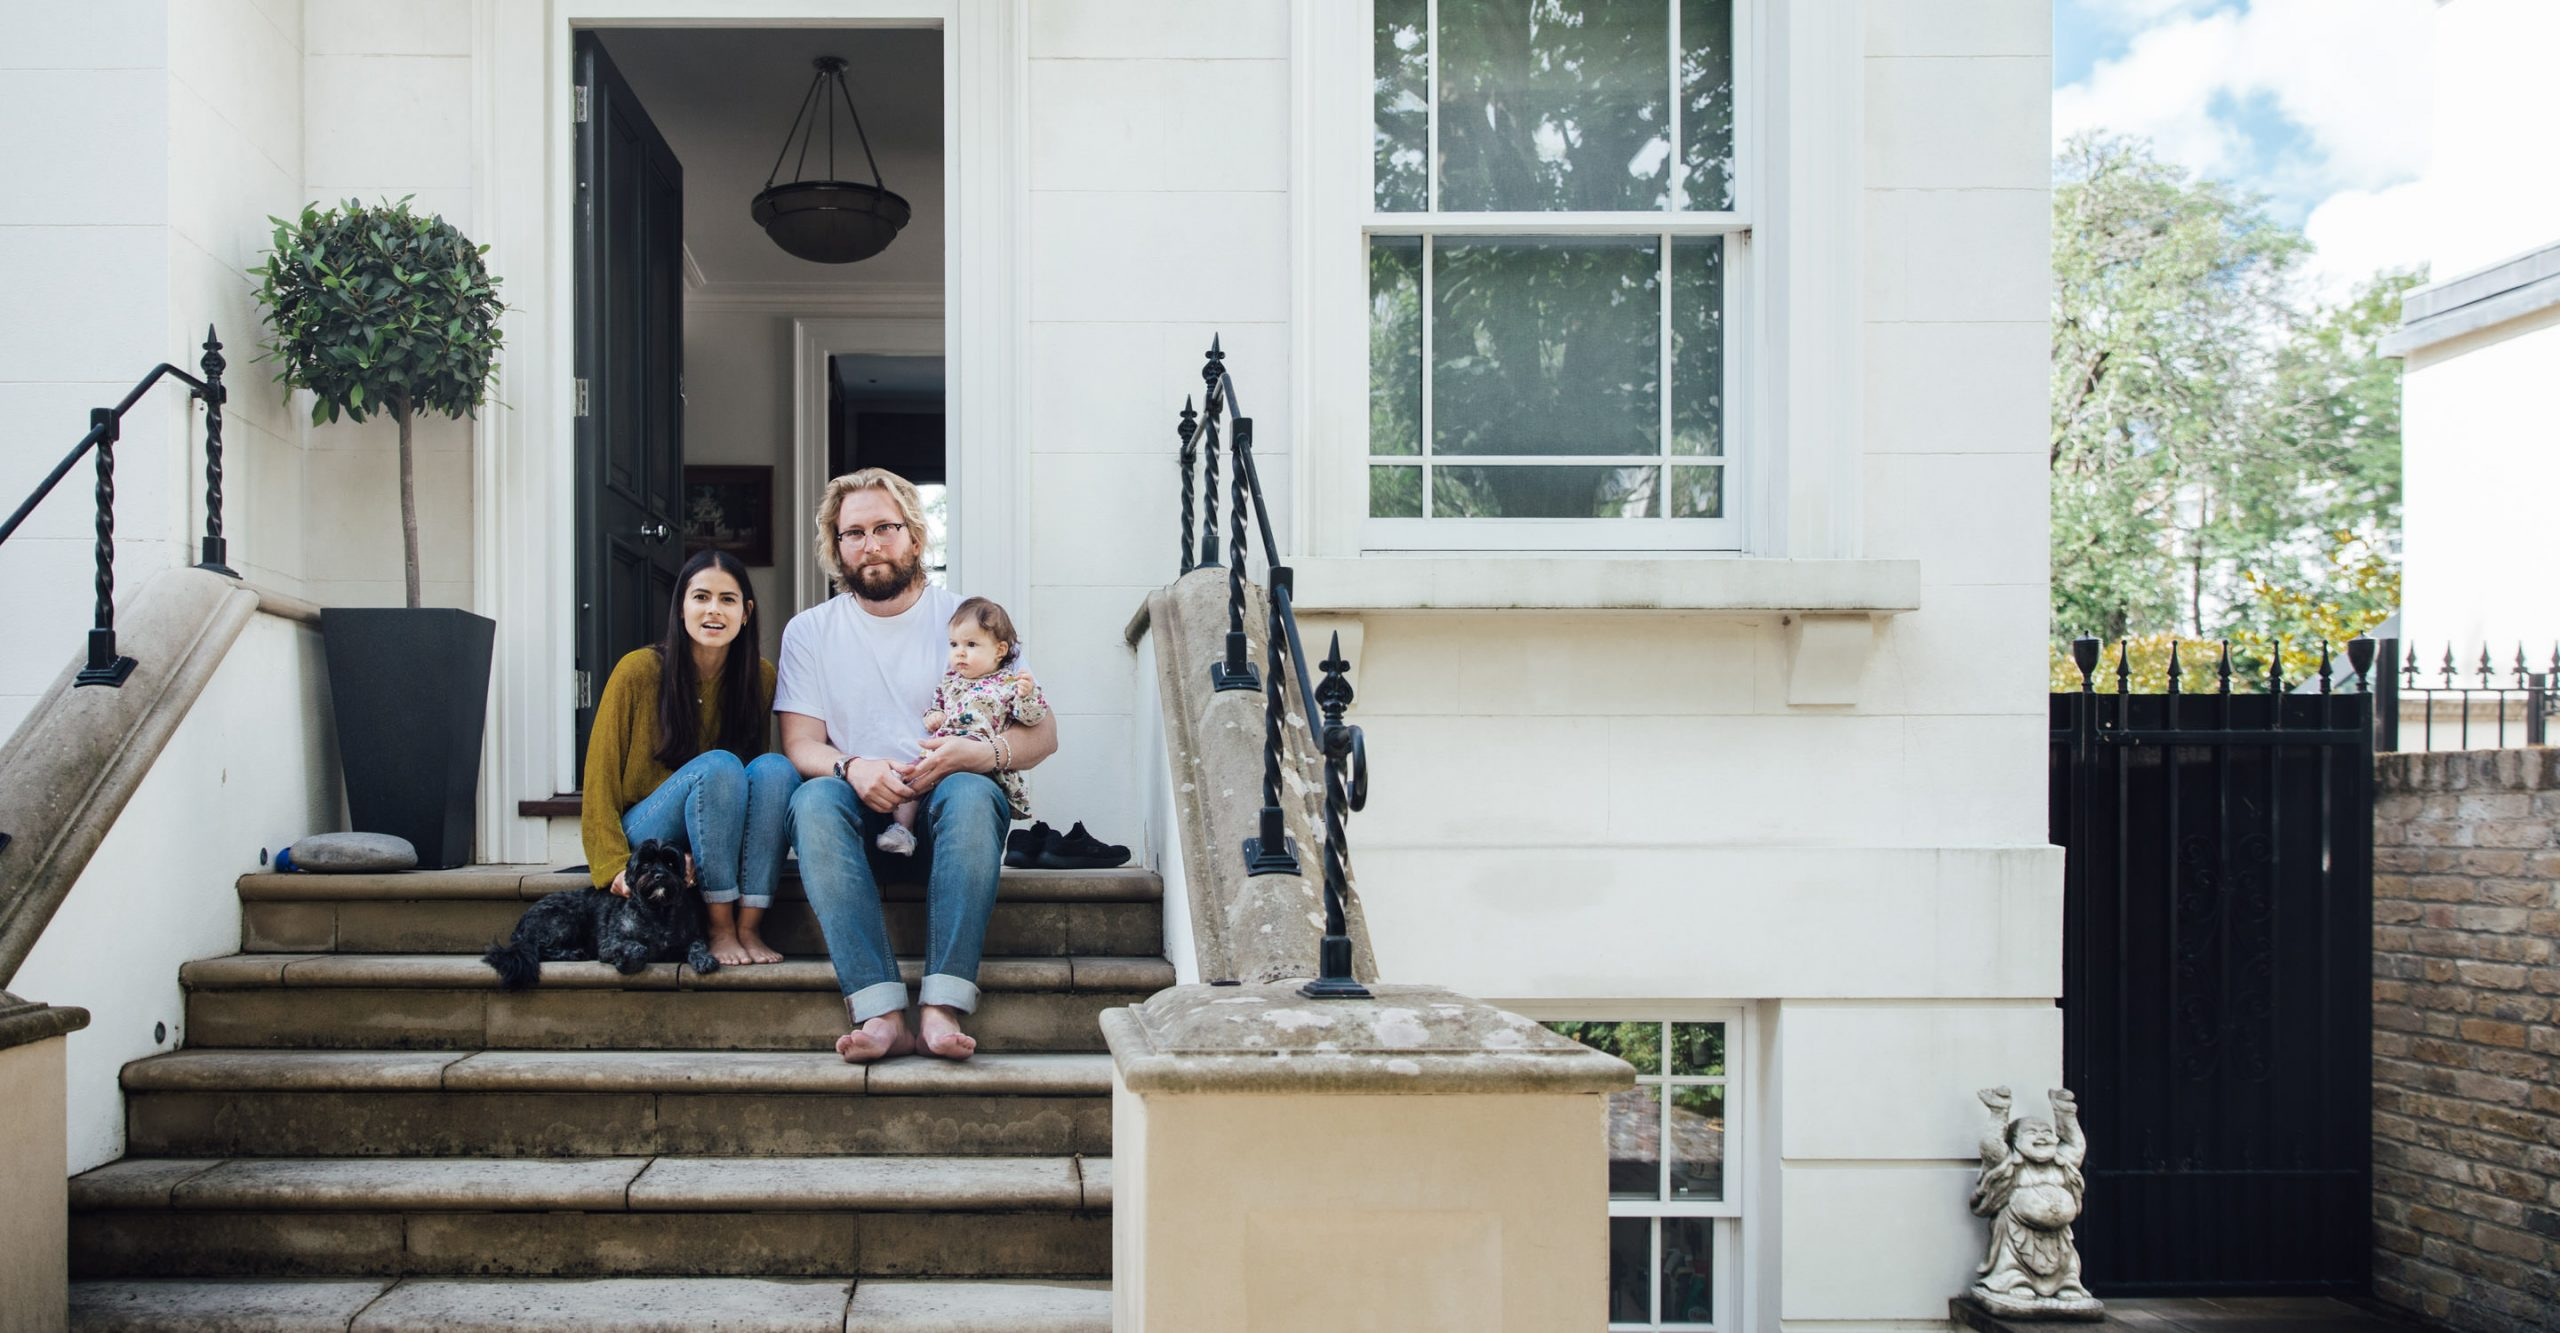 St John's Wood family photography | Doorstep portrait shoot in NW8